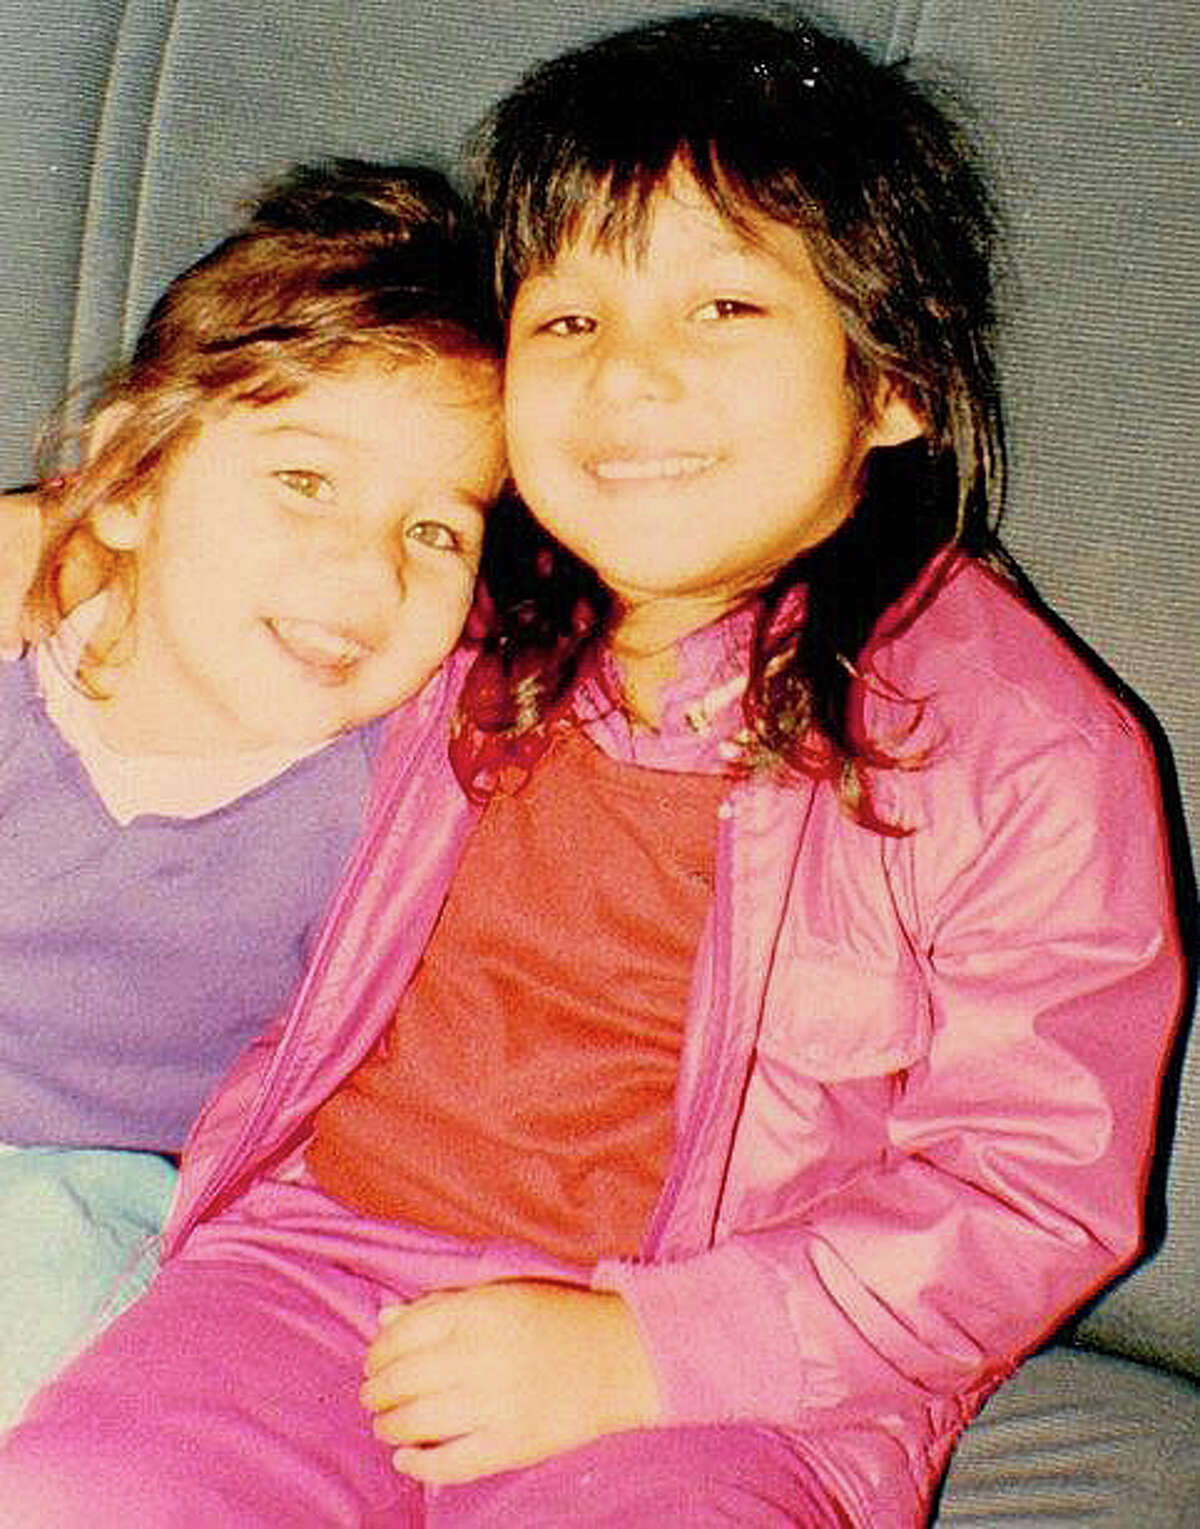 Melissa Garcia, left, leans against her cousin, Natalie Ochoa, in Houston at an early age.